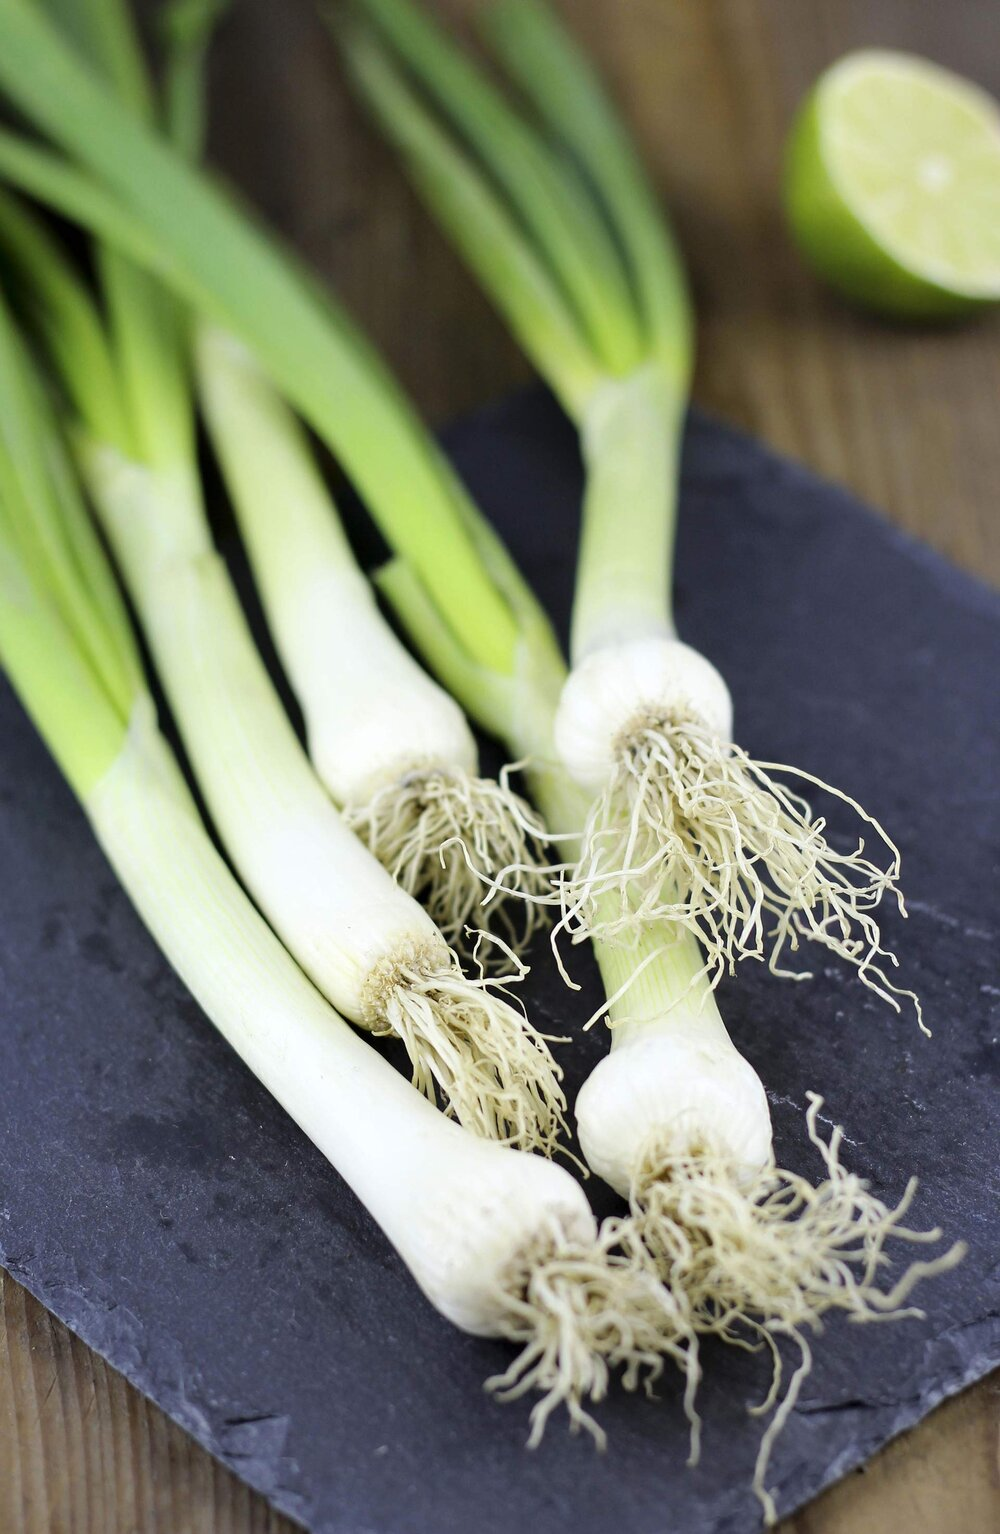 The bulb on these spring onions are the stem, and you can see the fibrous roots coming from the base.   Image source